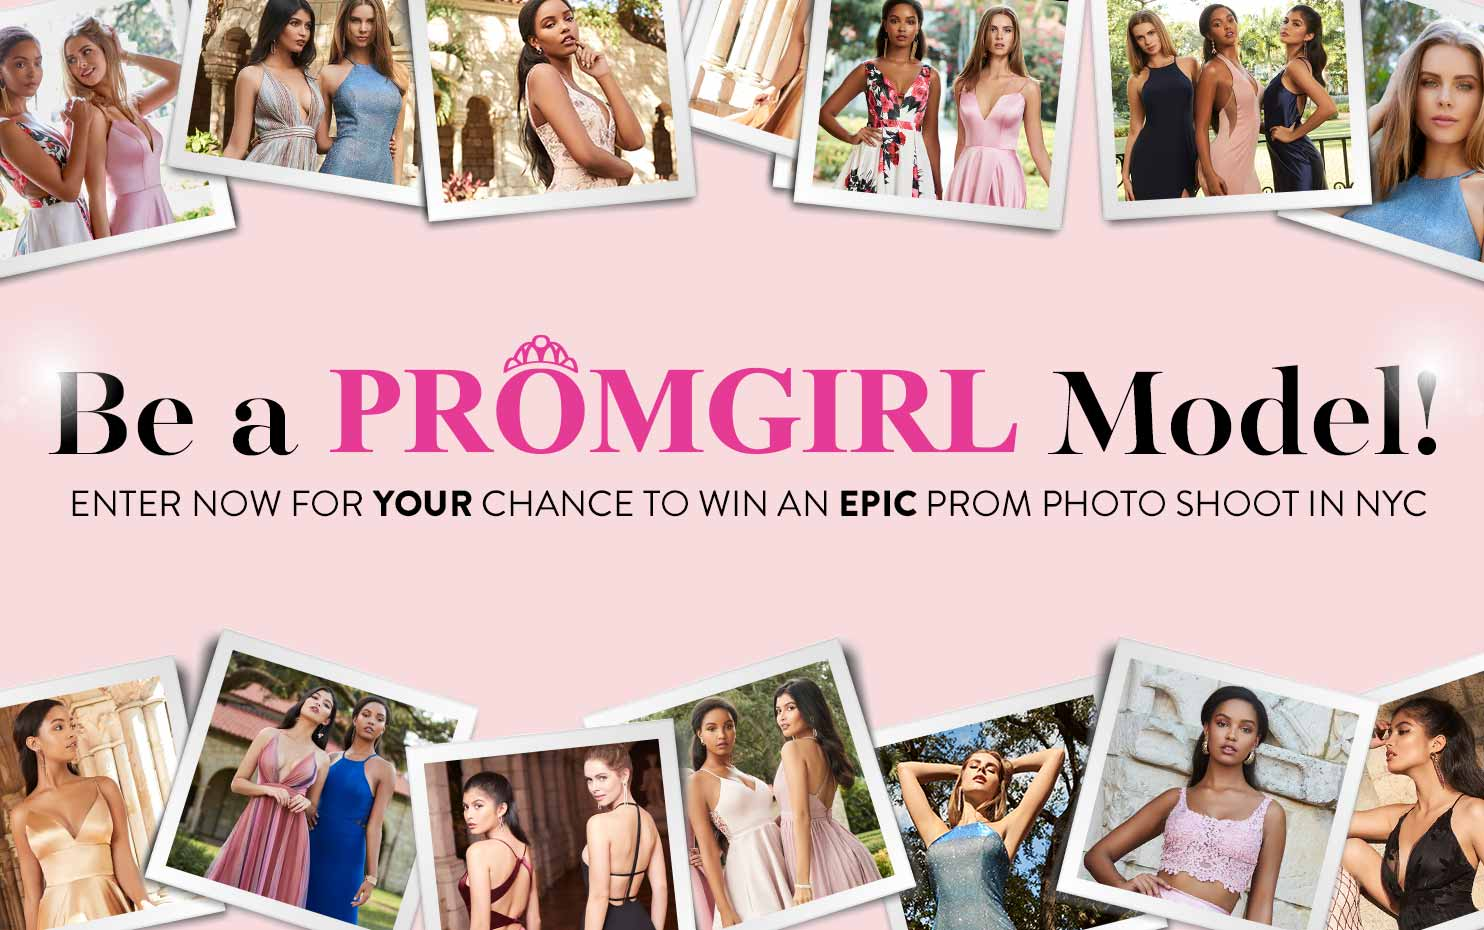 BE A PROM GIRL MODEL SWEEPSTAKES